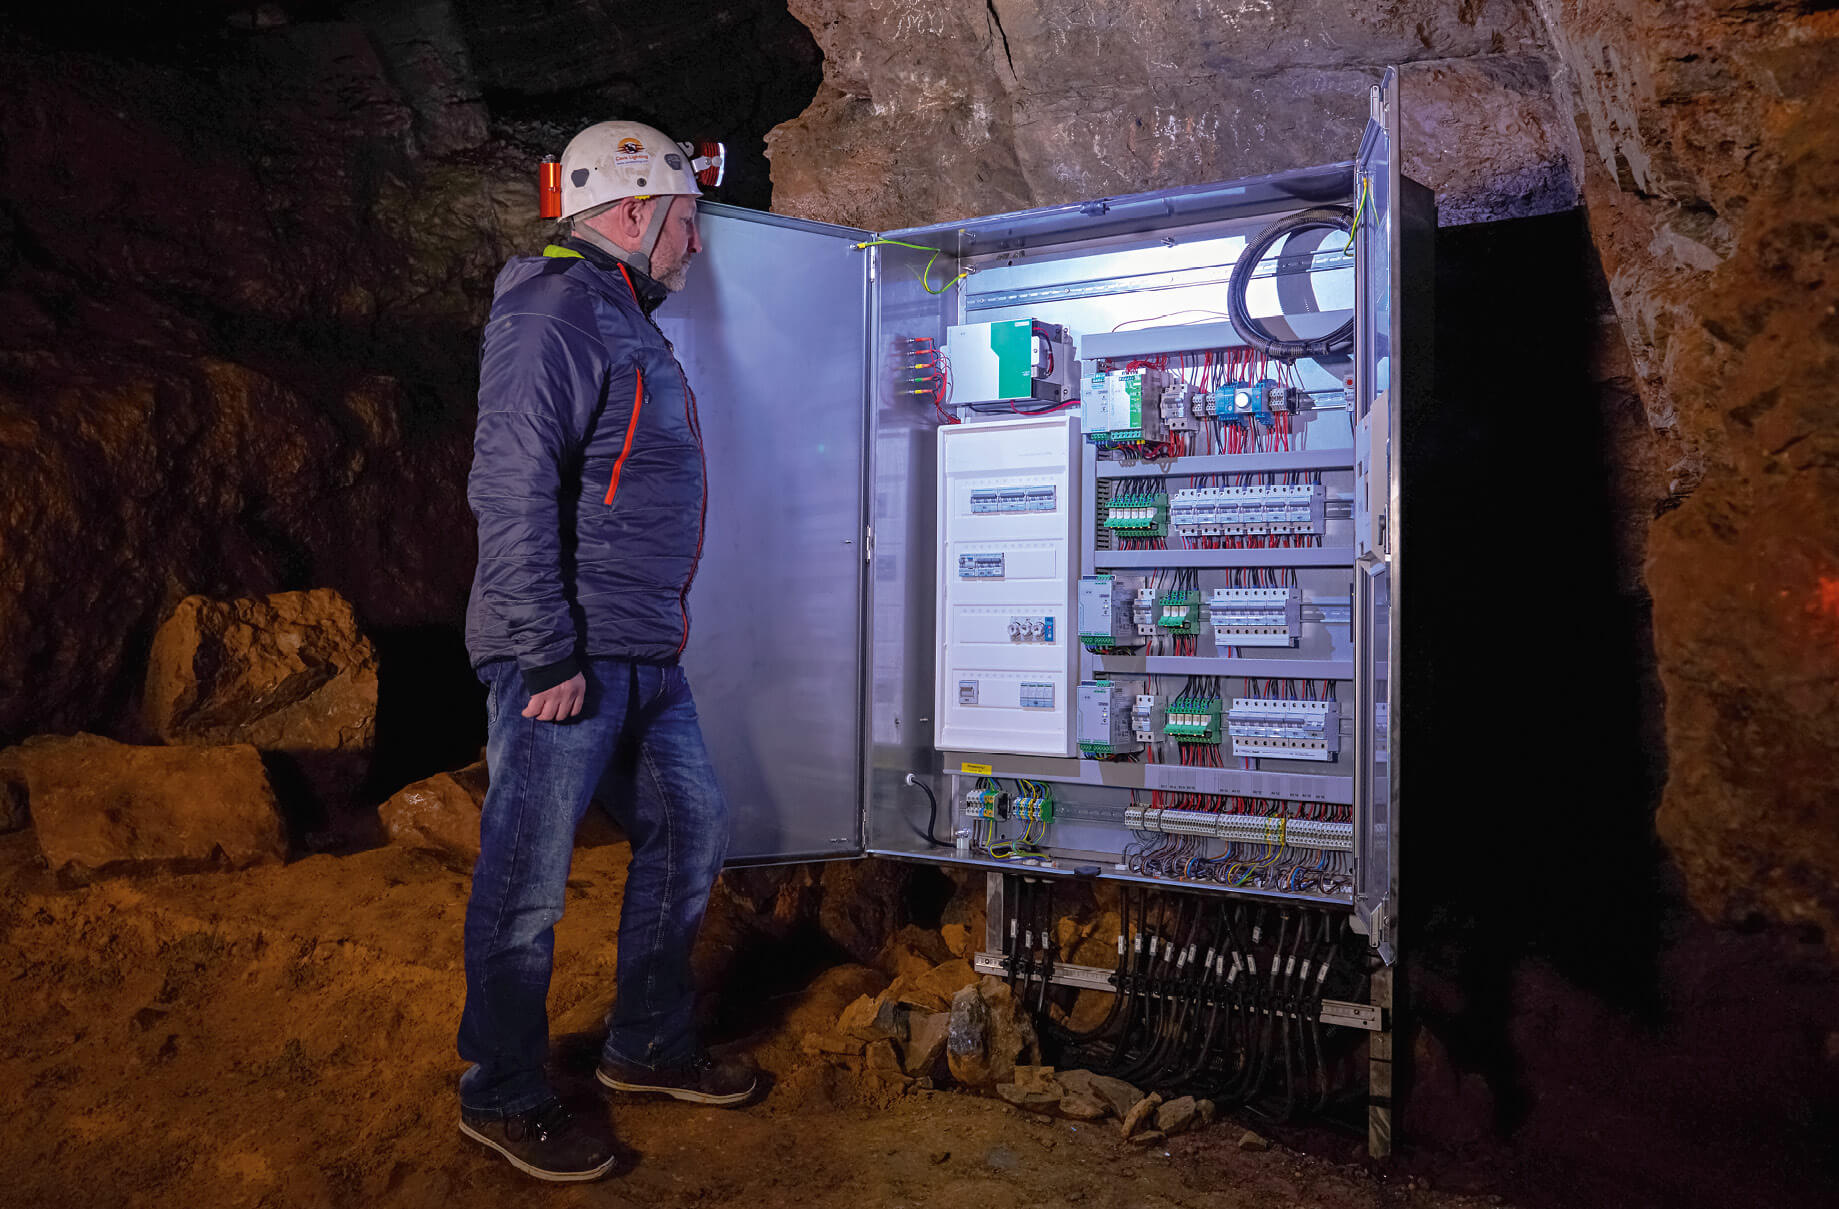 To ensure everything works smoothly, Cave Lighting uses high-quality products from Phoenix Contact for the power supply, overvoltage protection, terminal blocks, connectors and control technology.